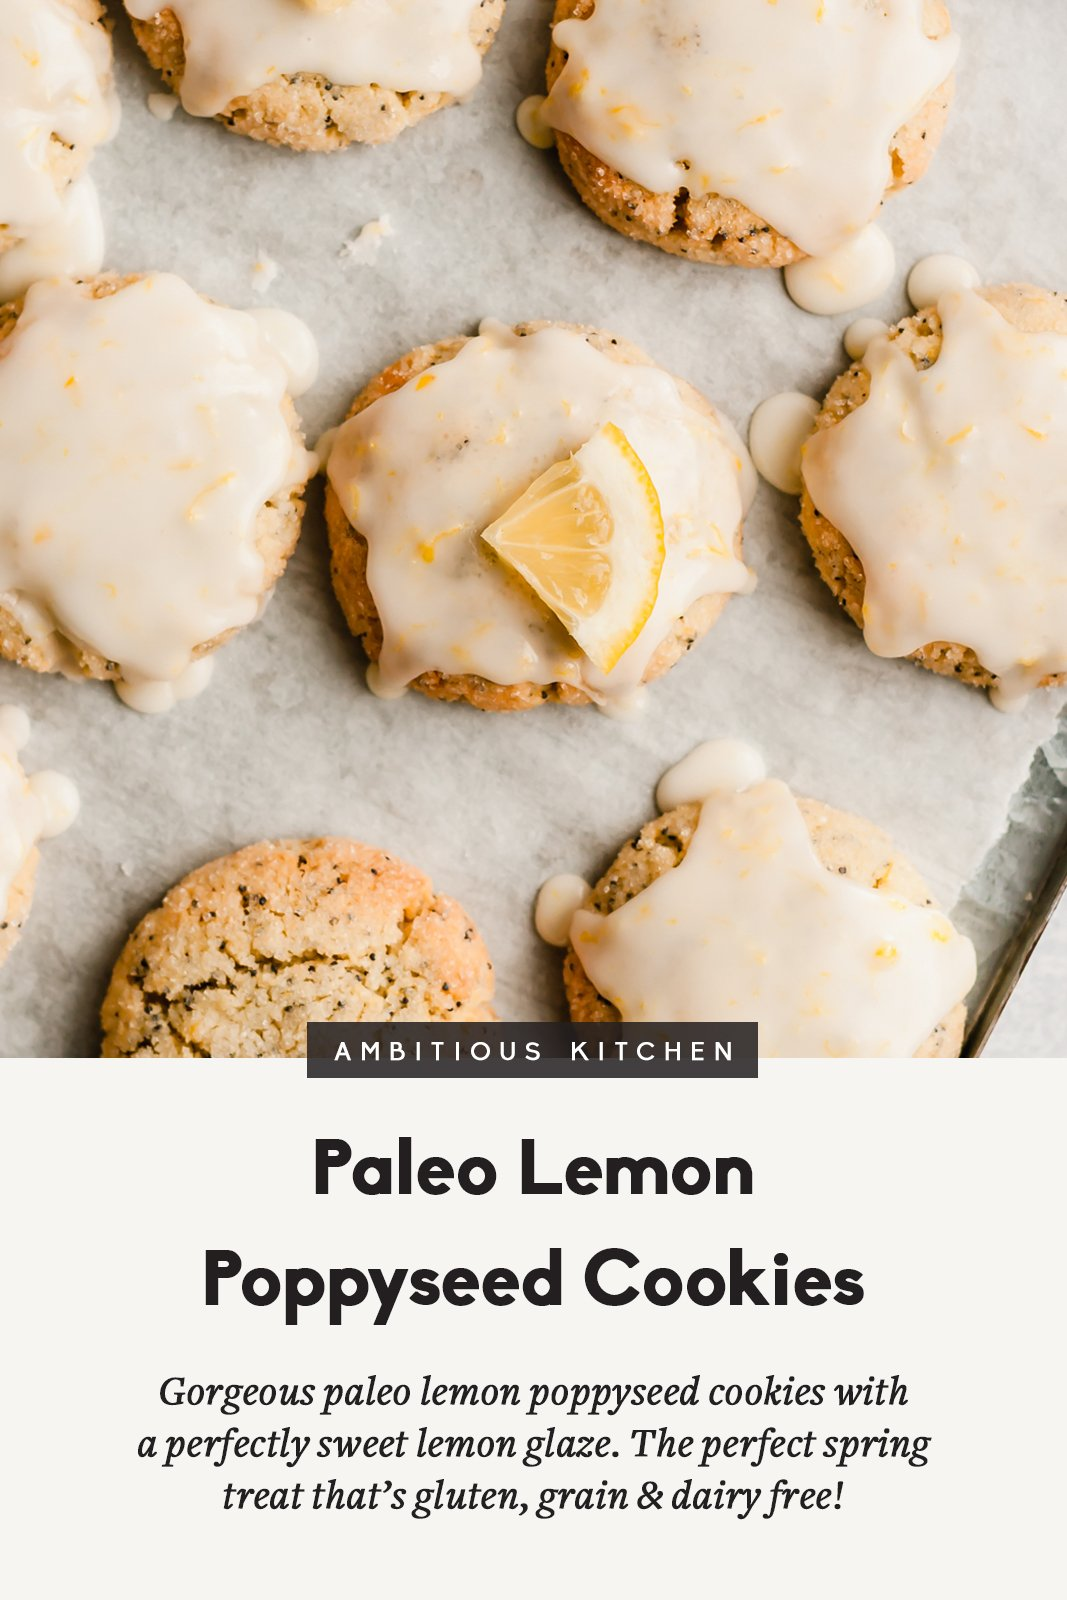 paleo lemon poppyseed cookies on a baking tray with text underneath